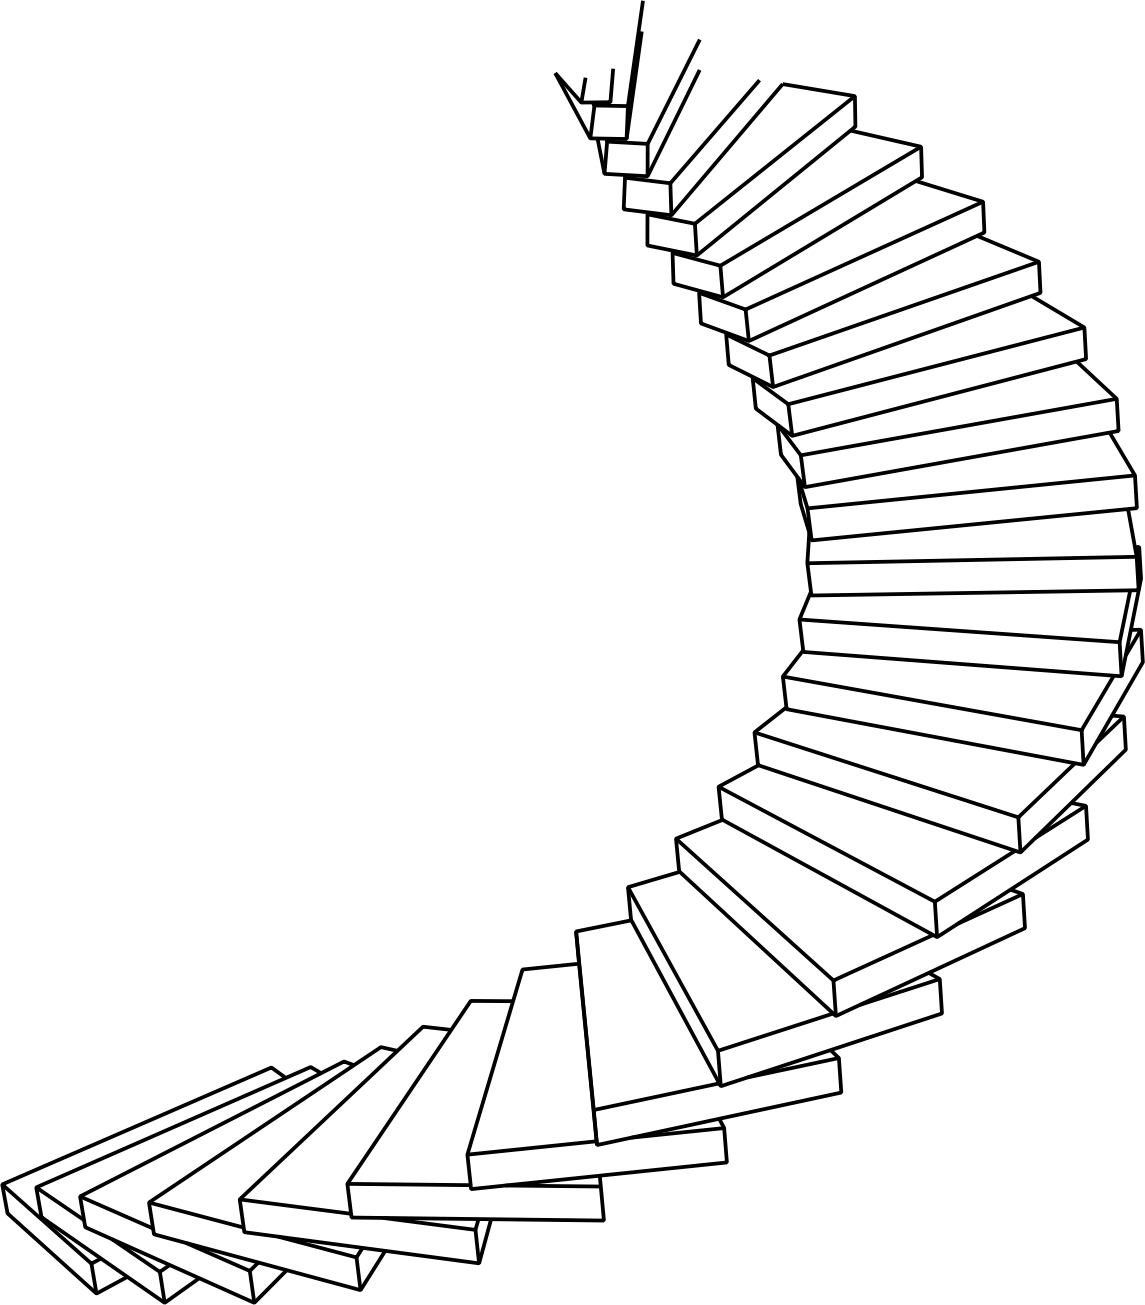 1145x1305 Staircase Line Art Staircase Gallery